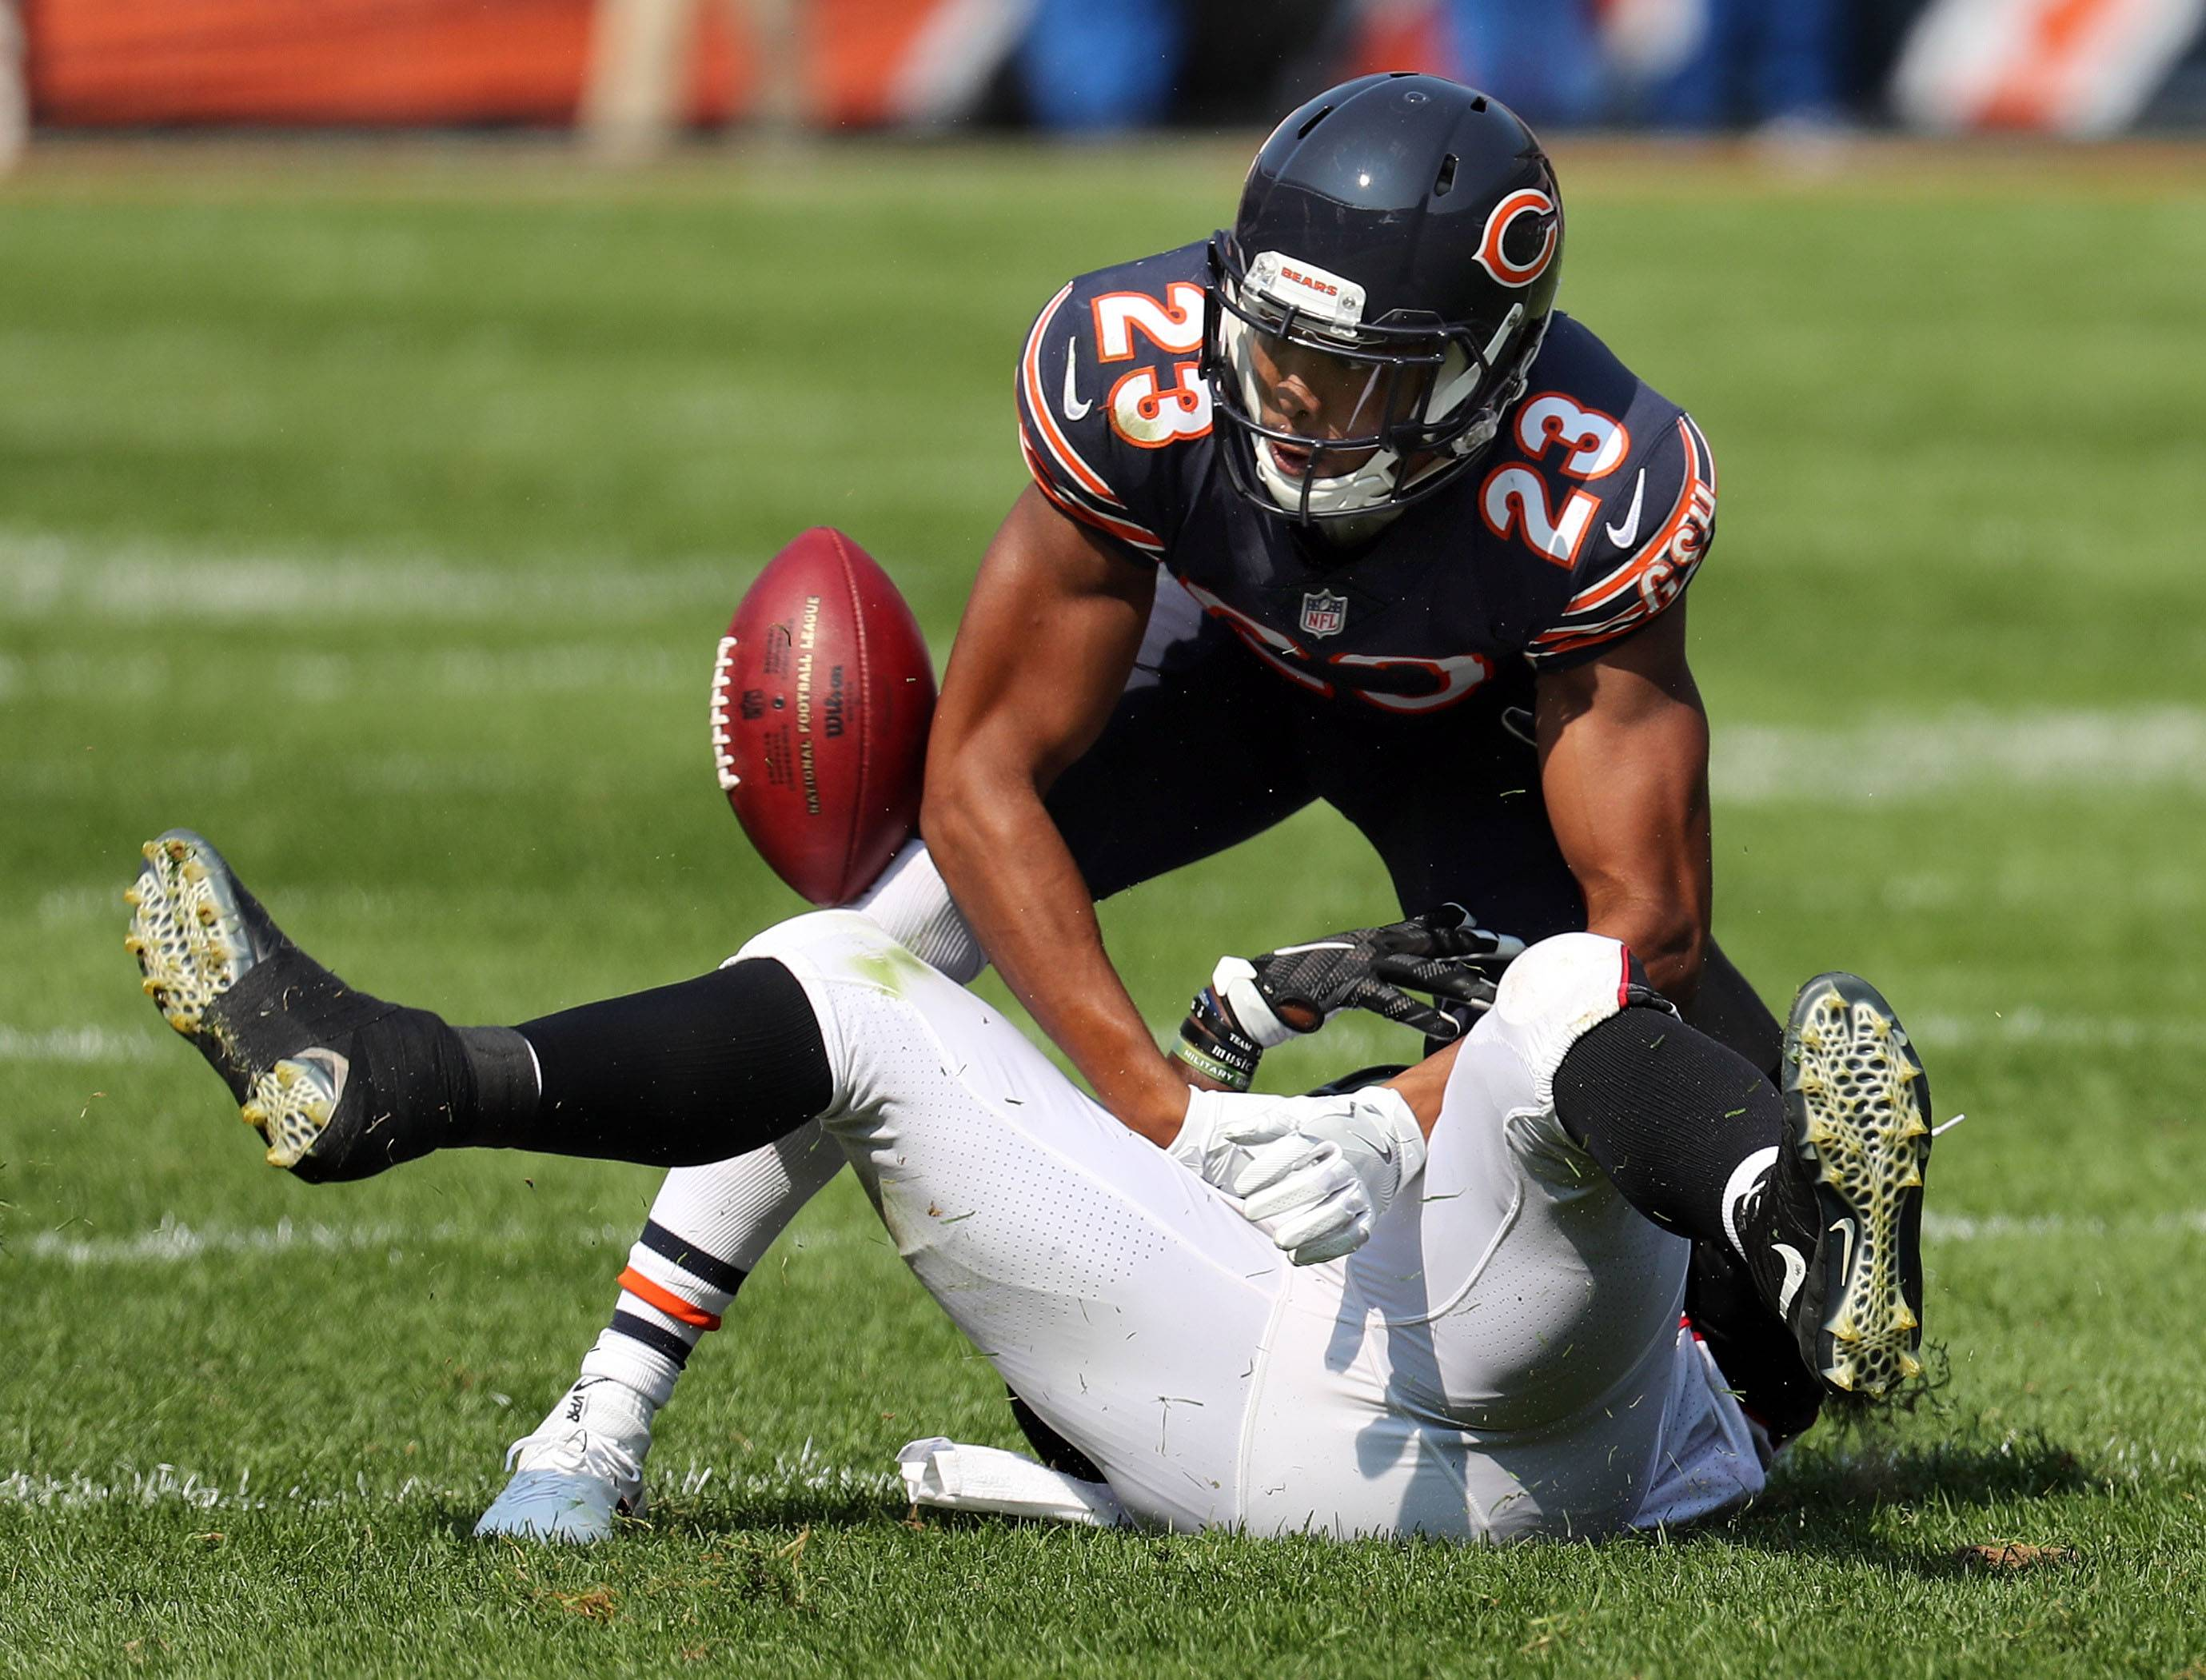 Chicago Bears cornerback Kyle Fuller will make nearly $13 million next season, and the Bears have the right to match any team's offer.